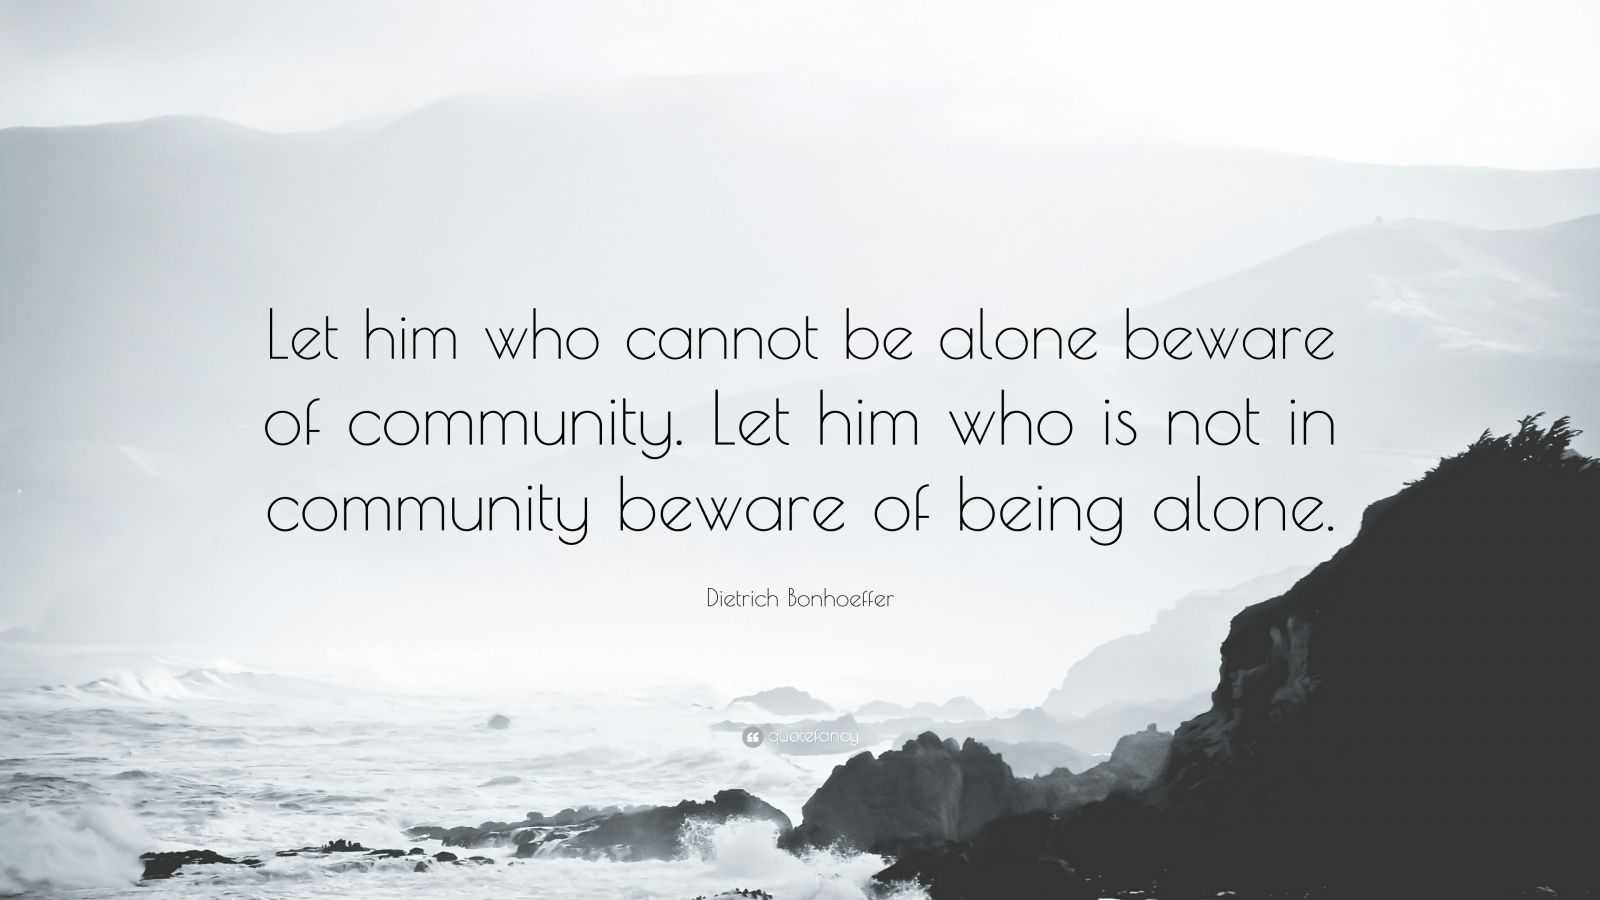 """Dietrich Bonhoeffer Quote: """"Let him who cannot be alone beware of community. Let him who is not in community beware of being alone."""""""